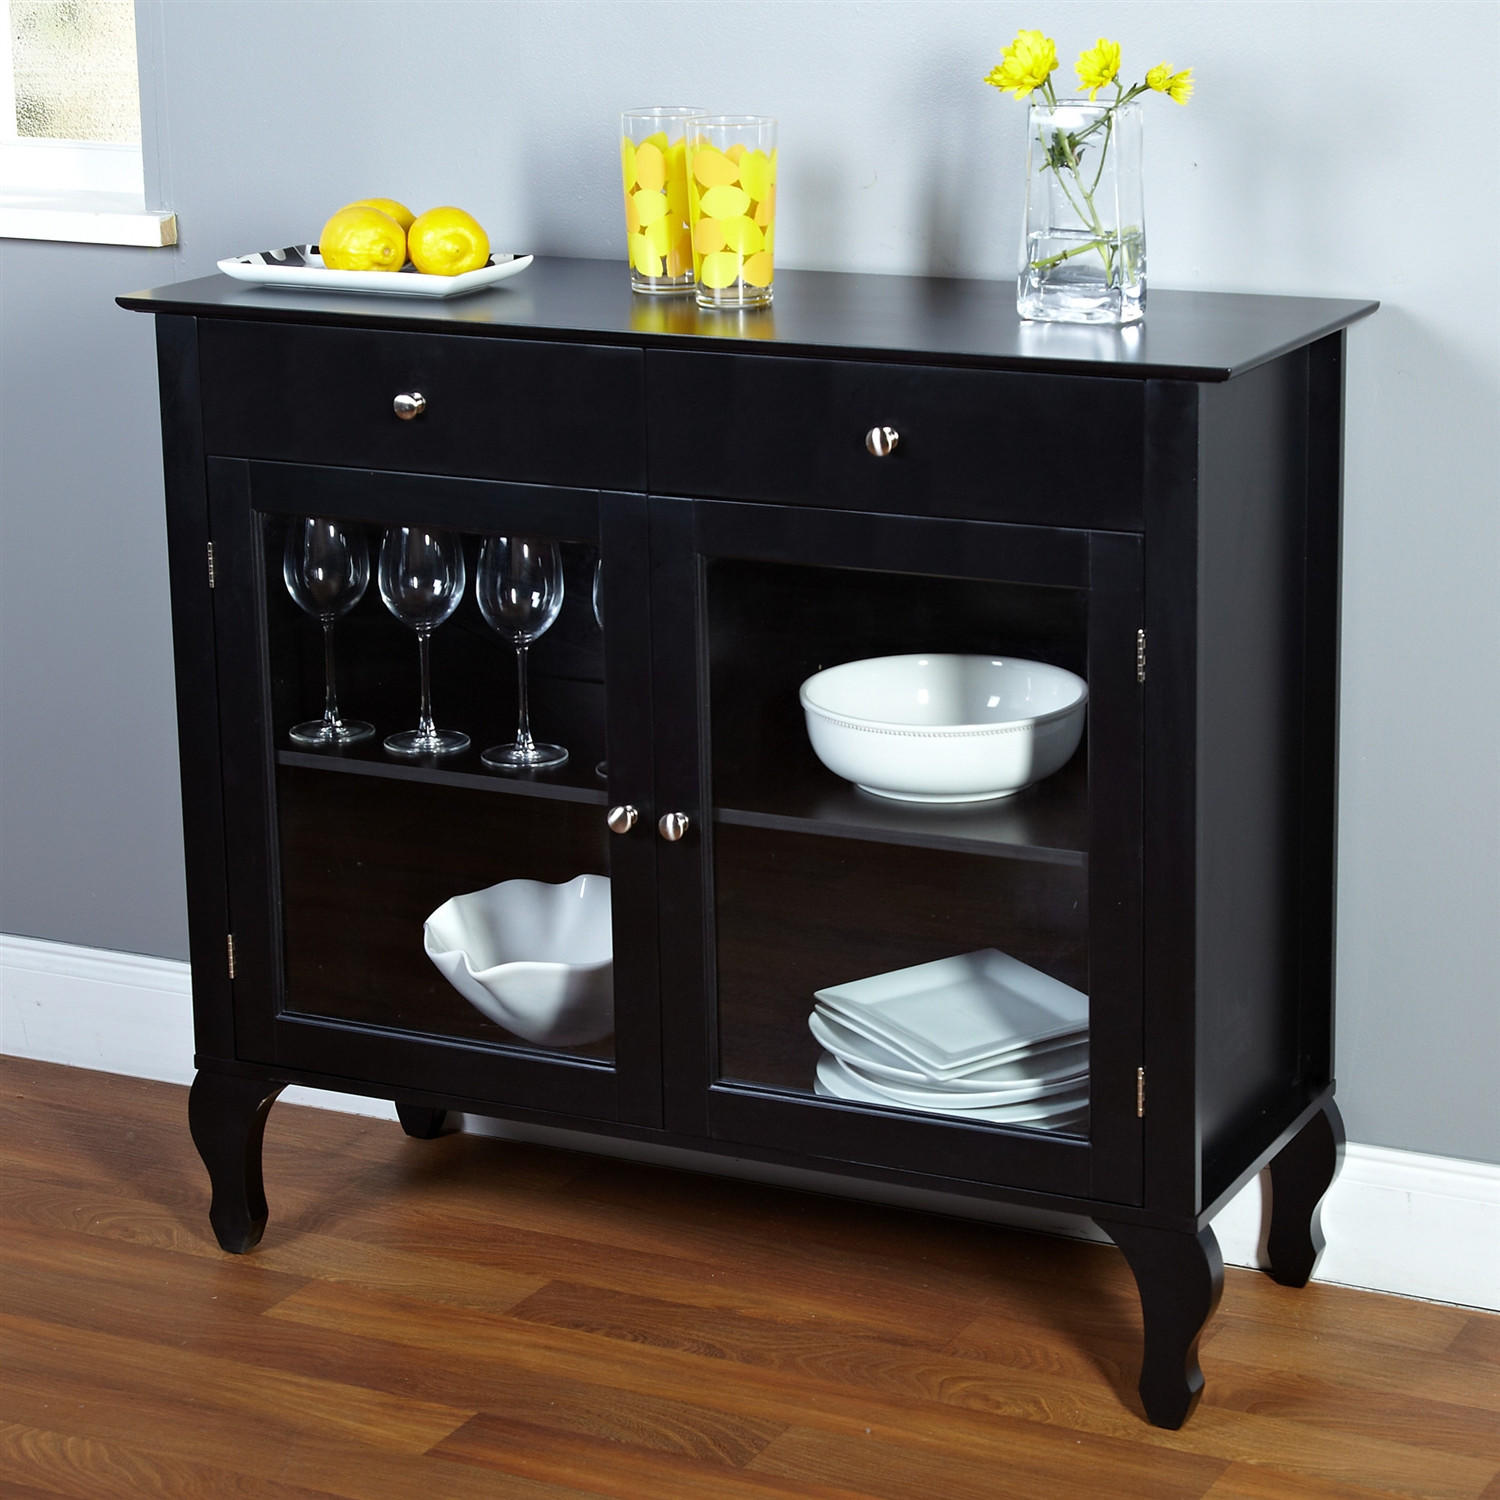 black dining room buffet sideboard server from hearts attic